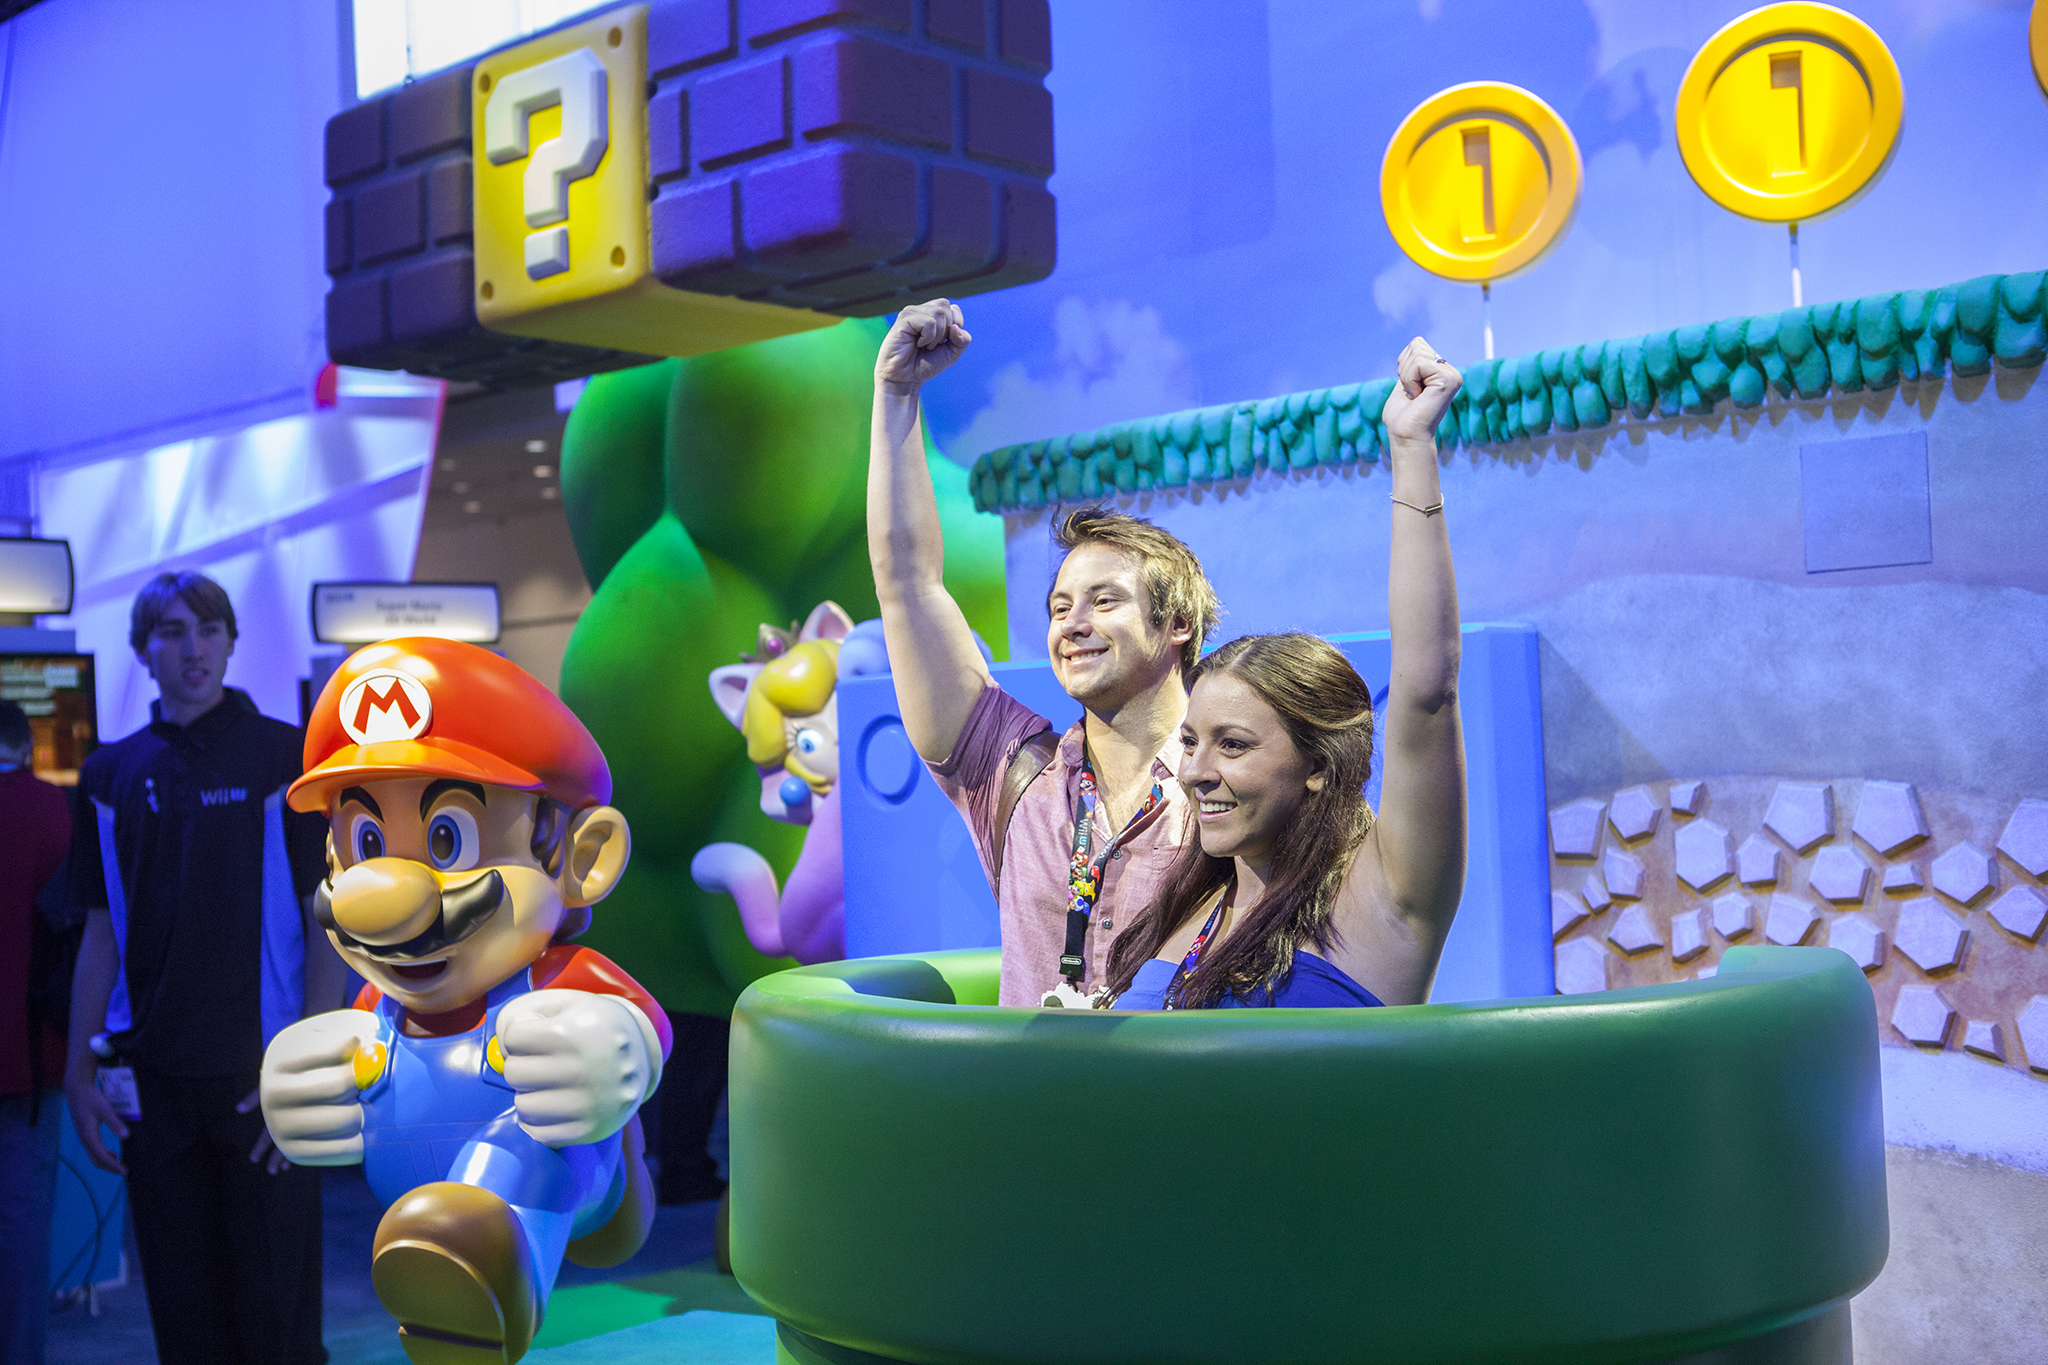 E3 is opening to the public for the first time